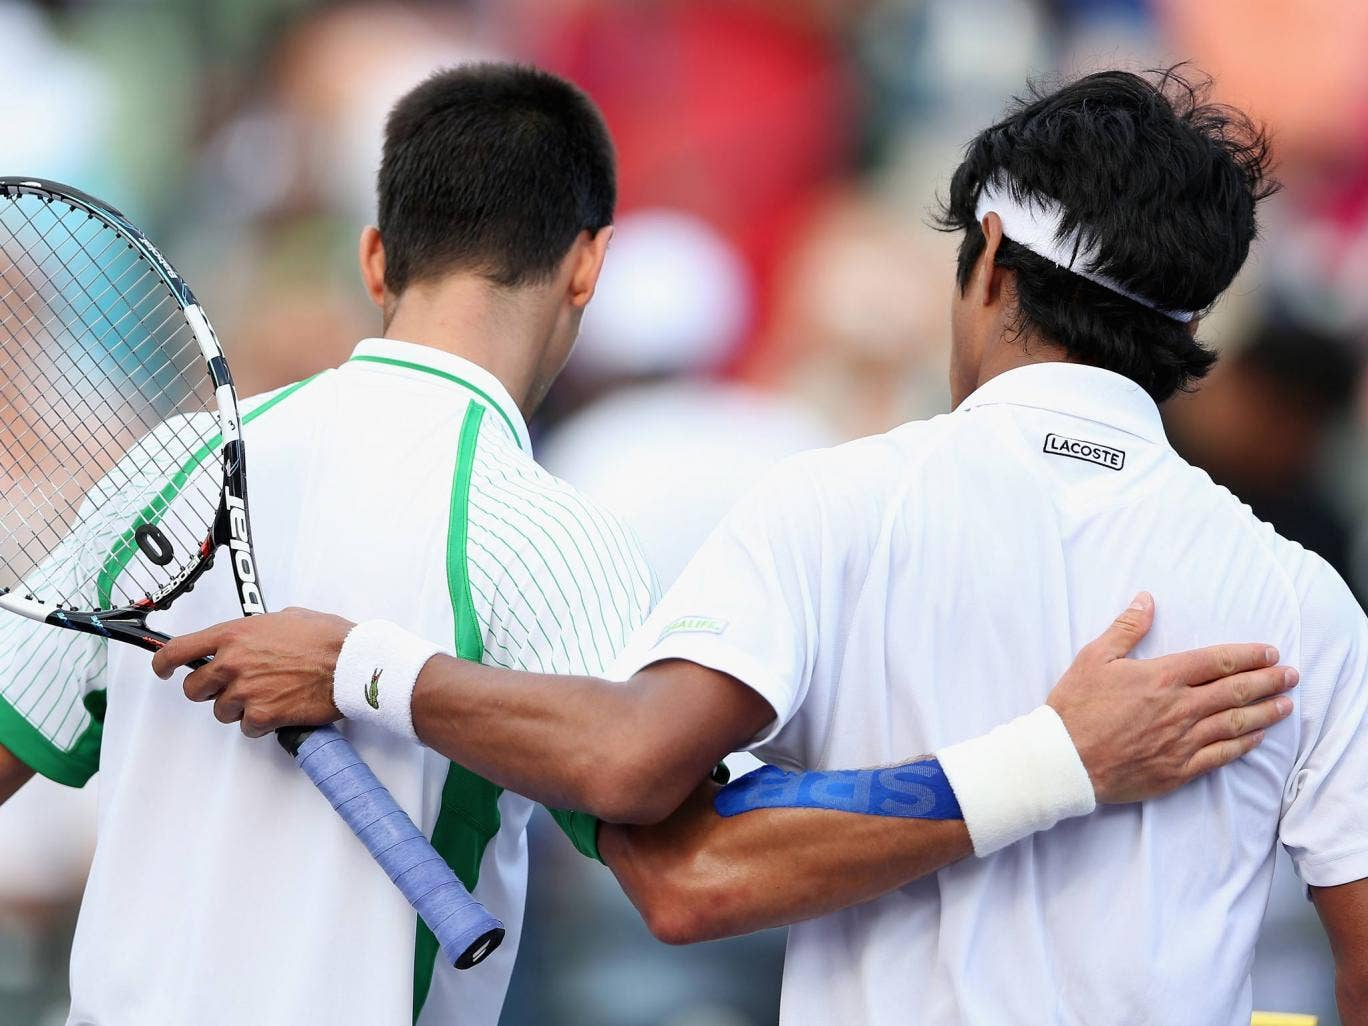 Novak Djokovic of Serbia walks off court after shaking hands at the net after his straight victory against Somdev Devvarma